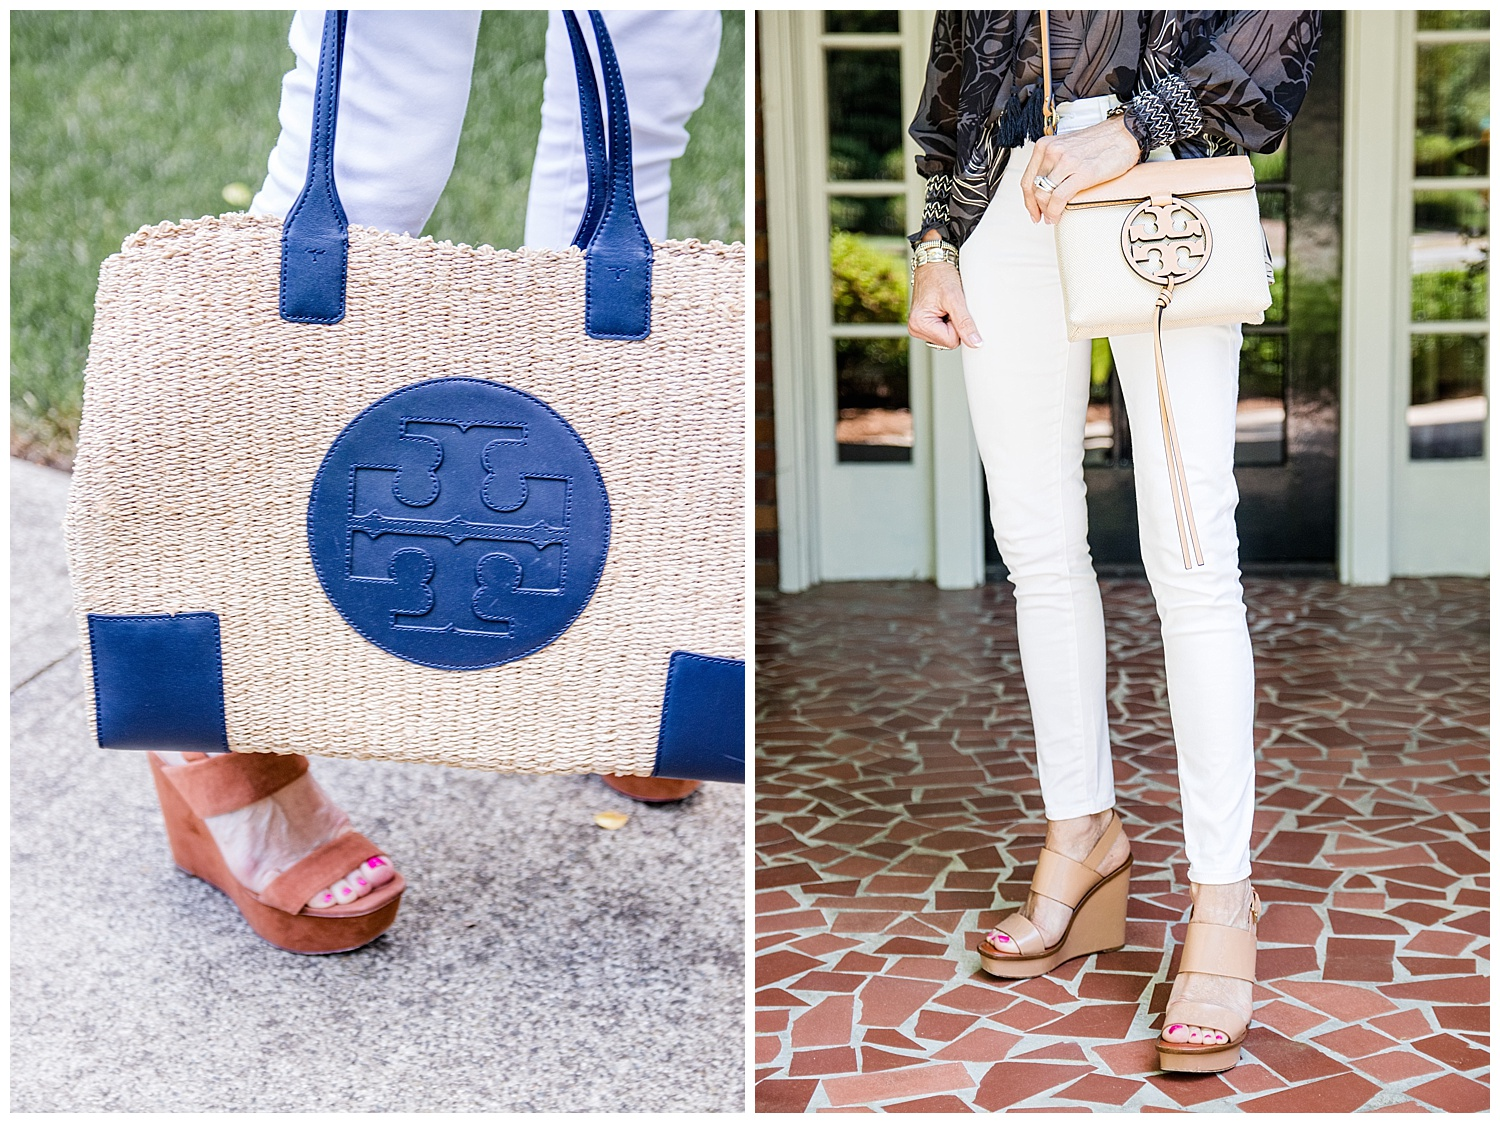 Tory Burch Bags - Crazy Blonde Style